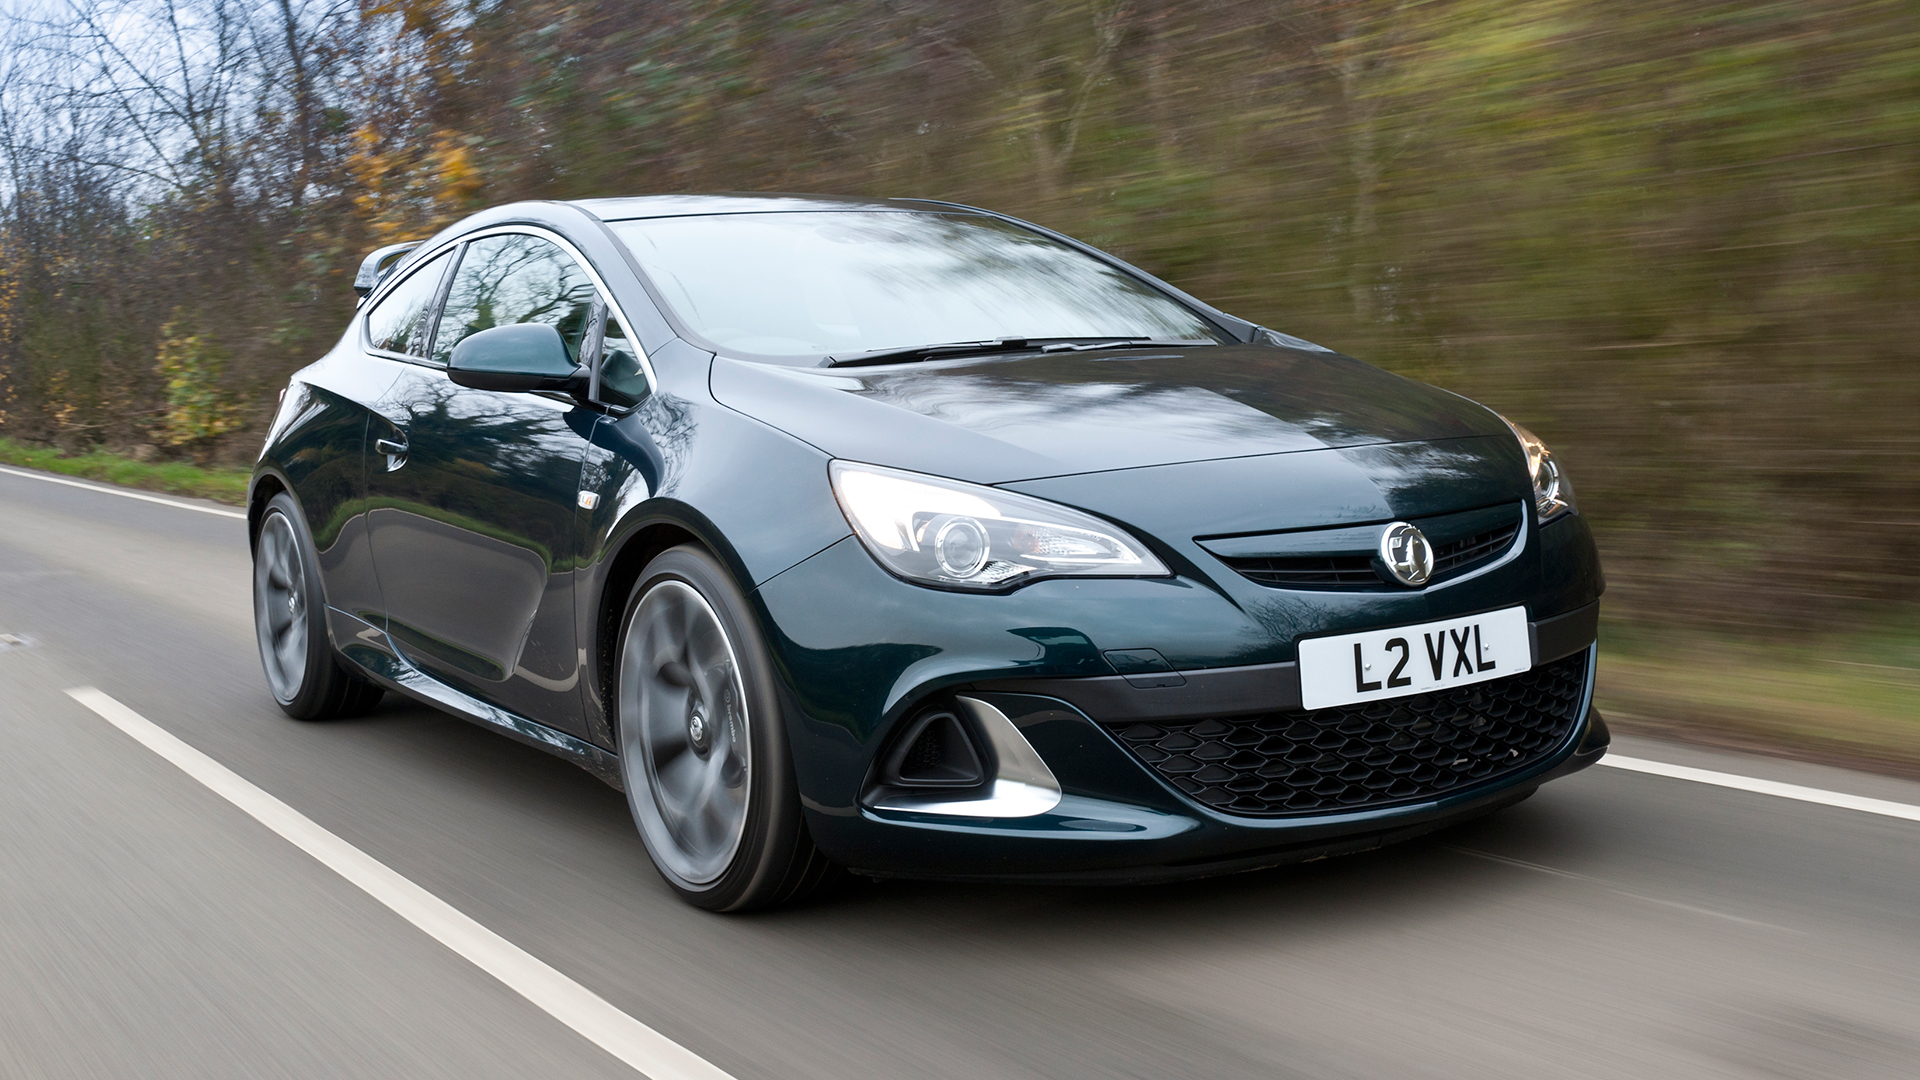 Vauxhall Astra VXR 2012 Review Auto Trader UK